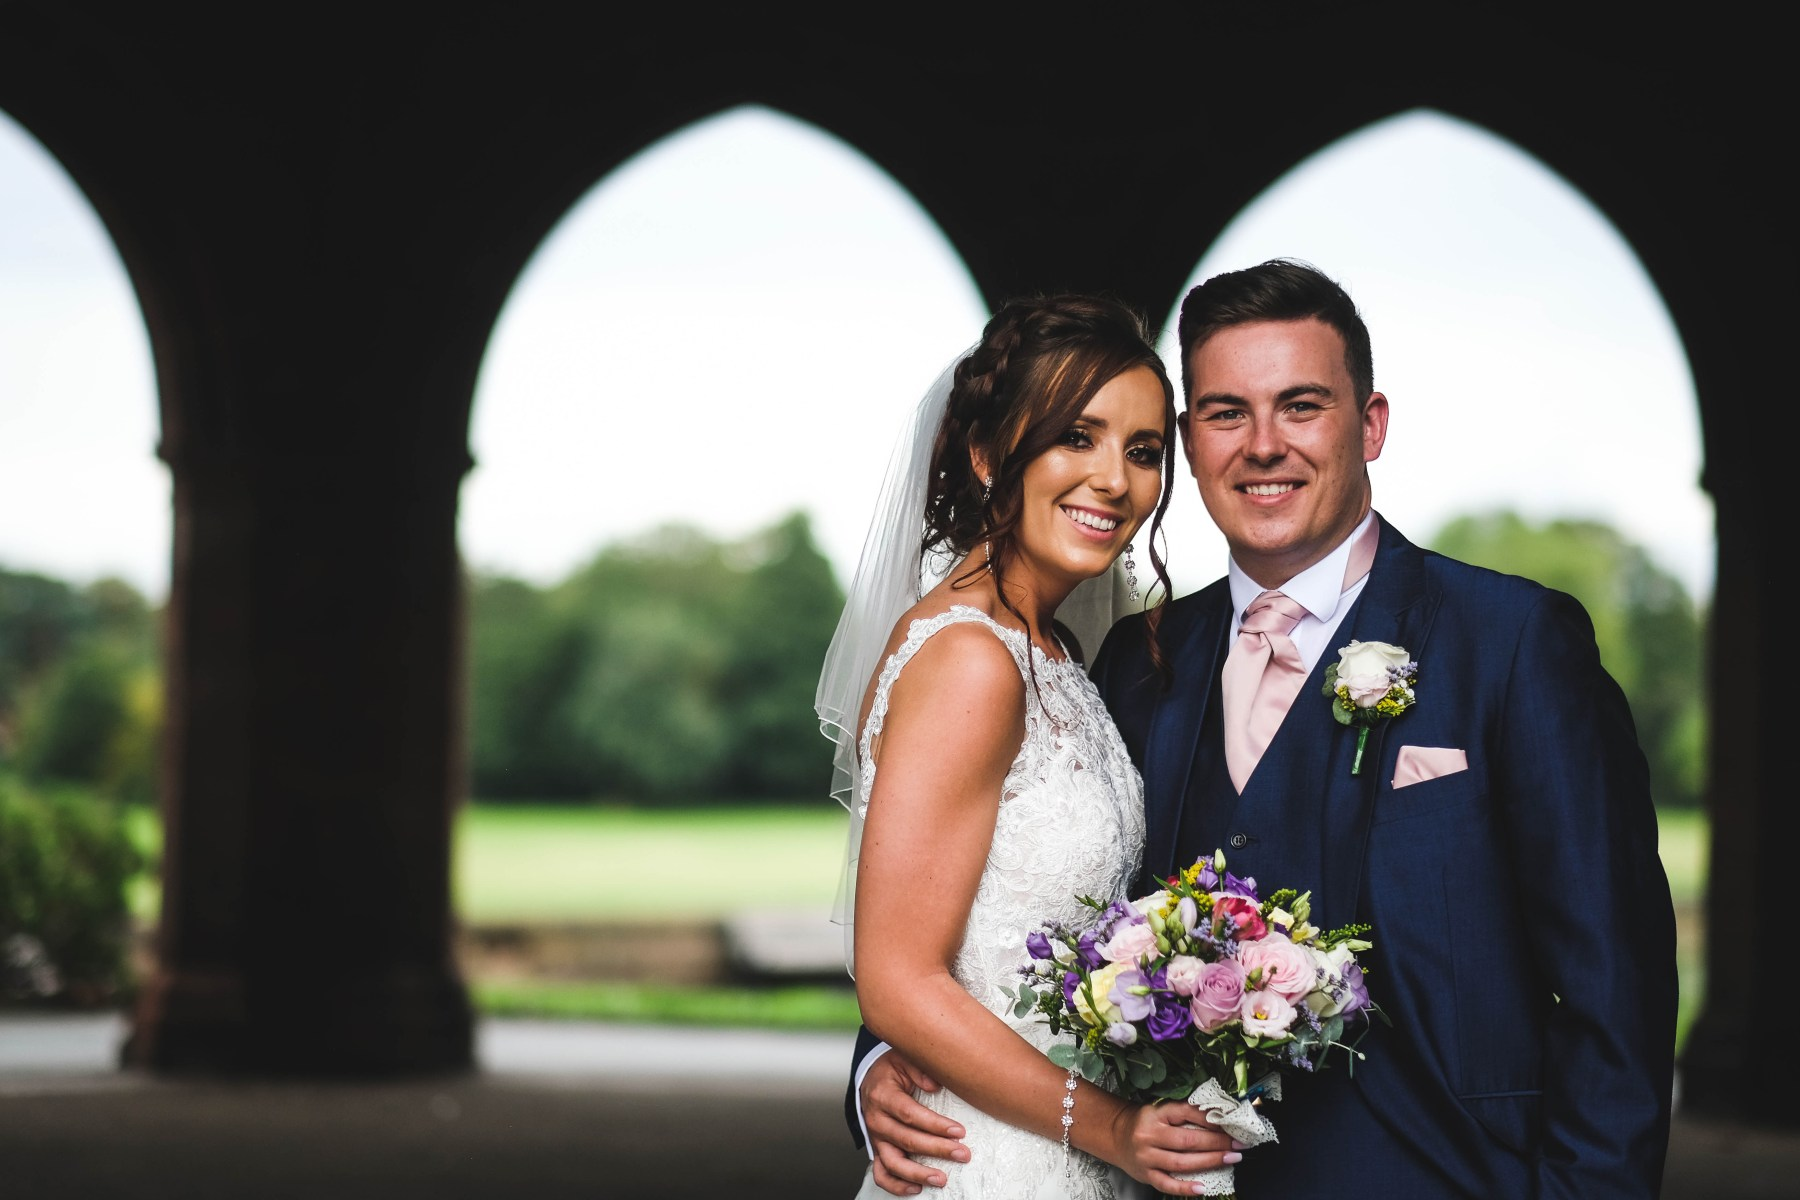 Documentary wedding photographers in the Wirral, Liverpool and Cheshire